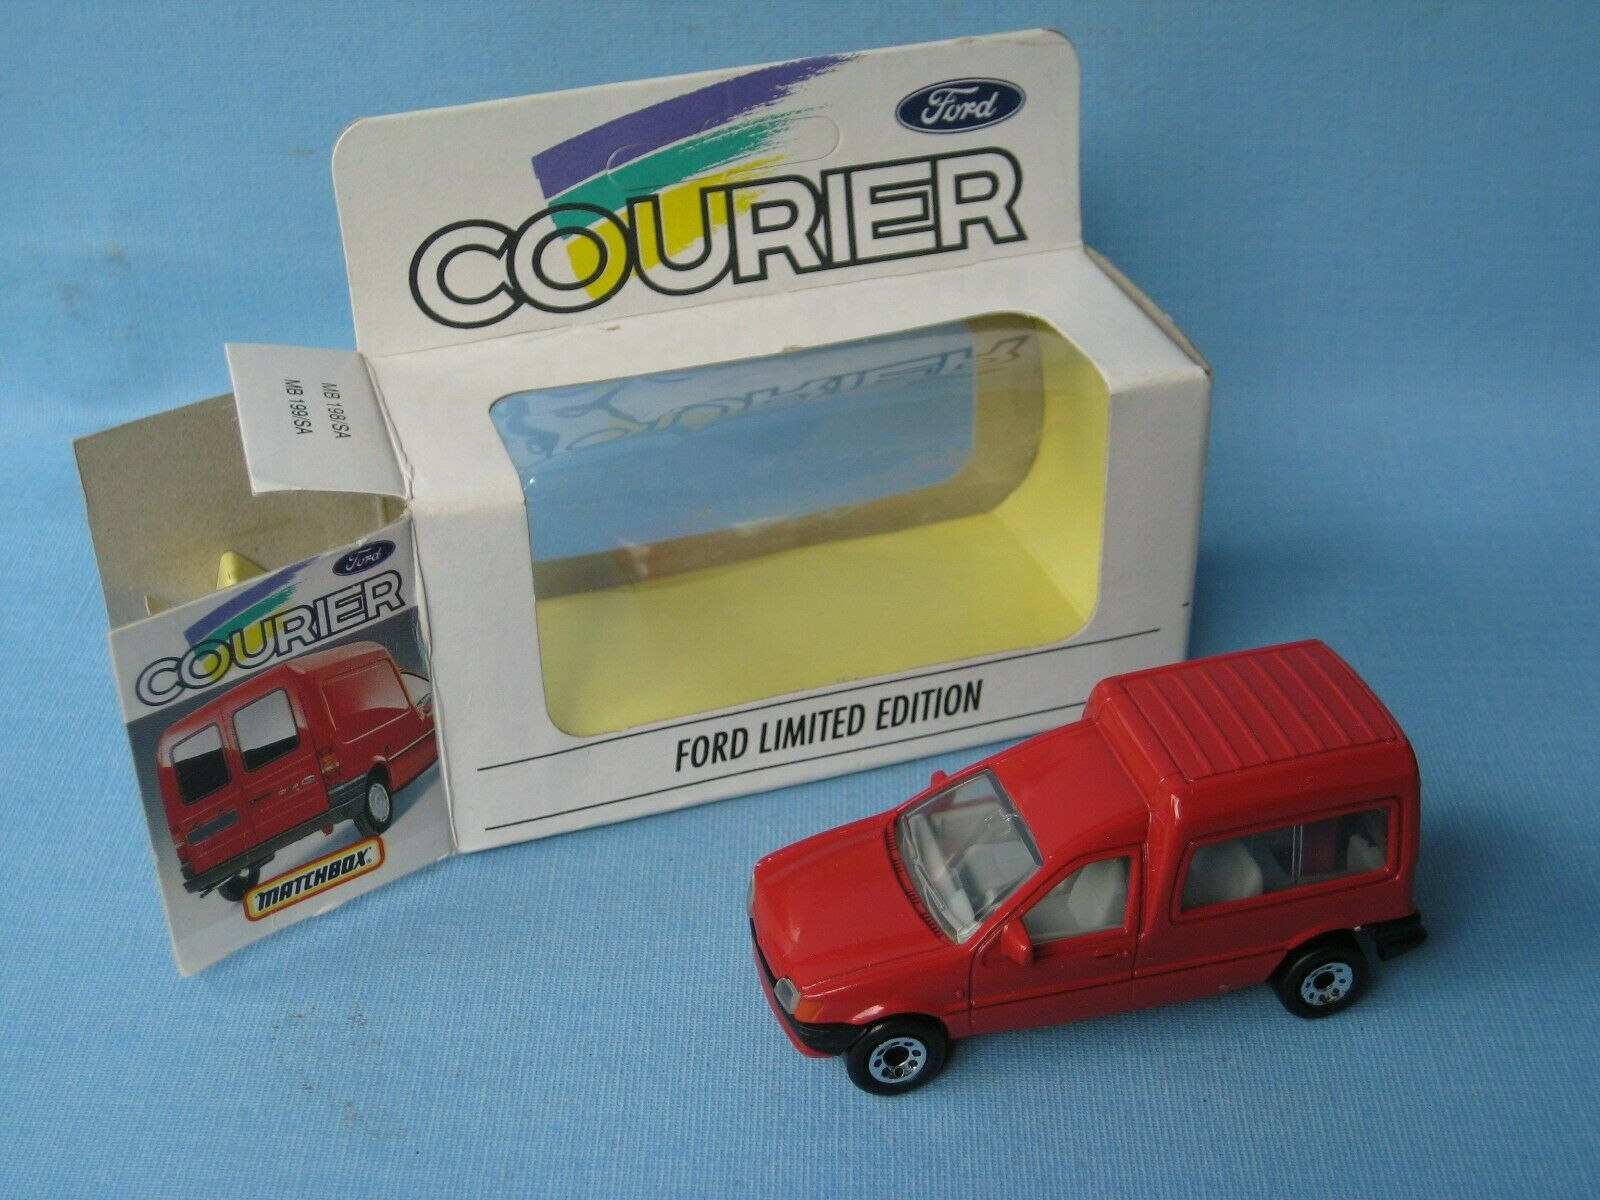 Matchbox Ford Courier Kombi Van RARE Red Body Toy Model Car 75mm